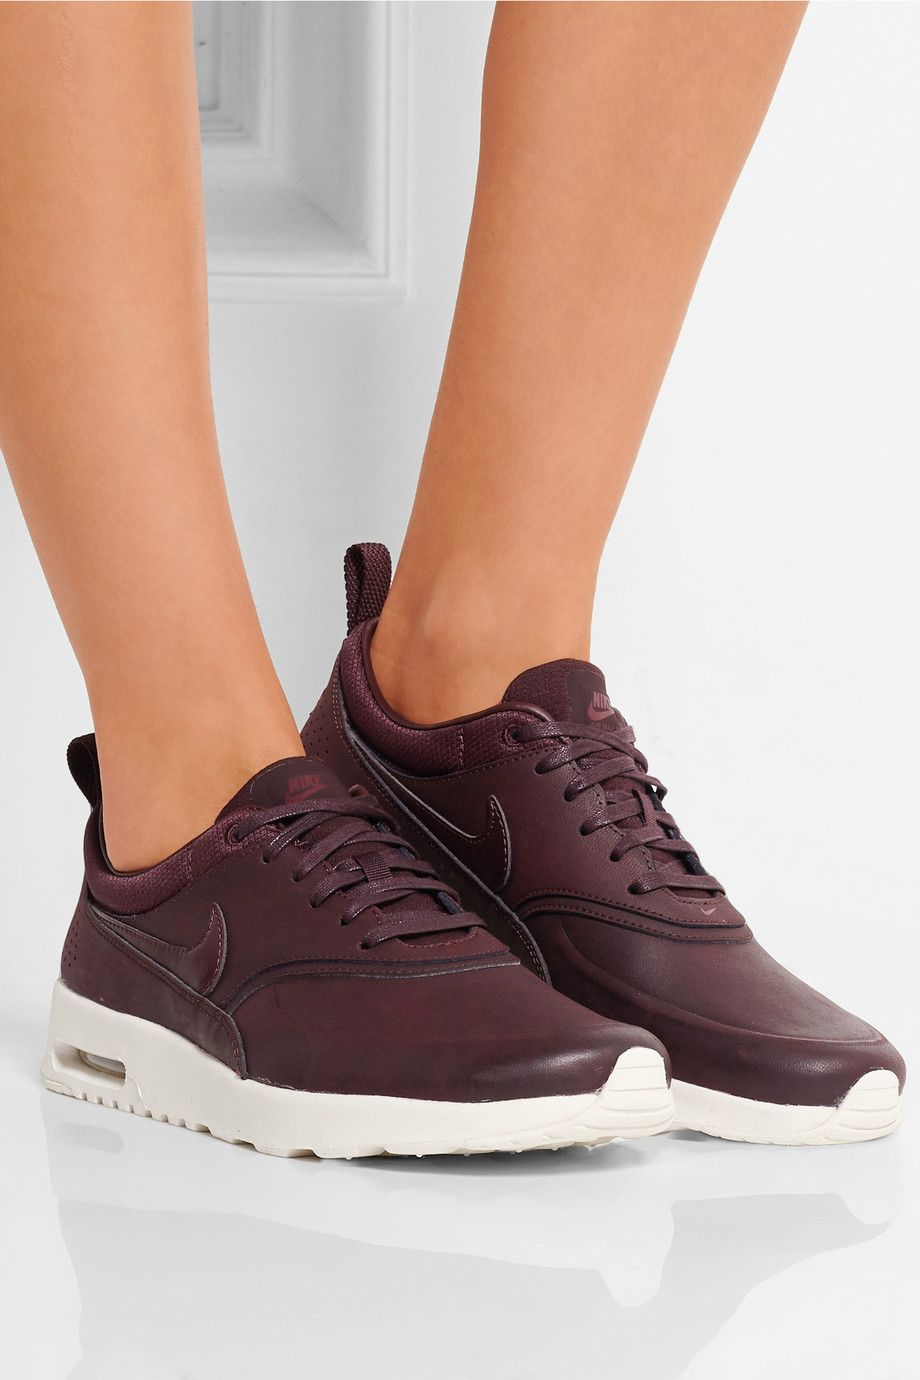 air max thea premium leather sneakers burgundy jordans